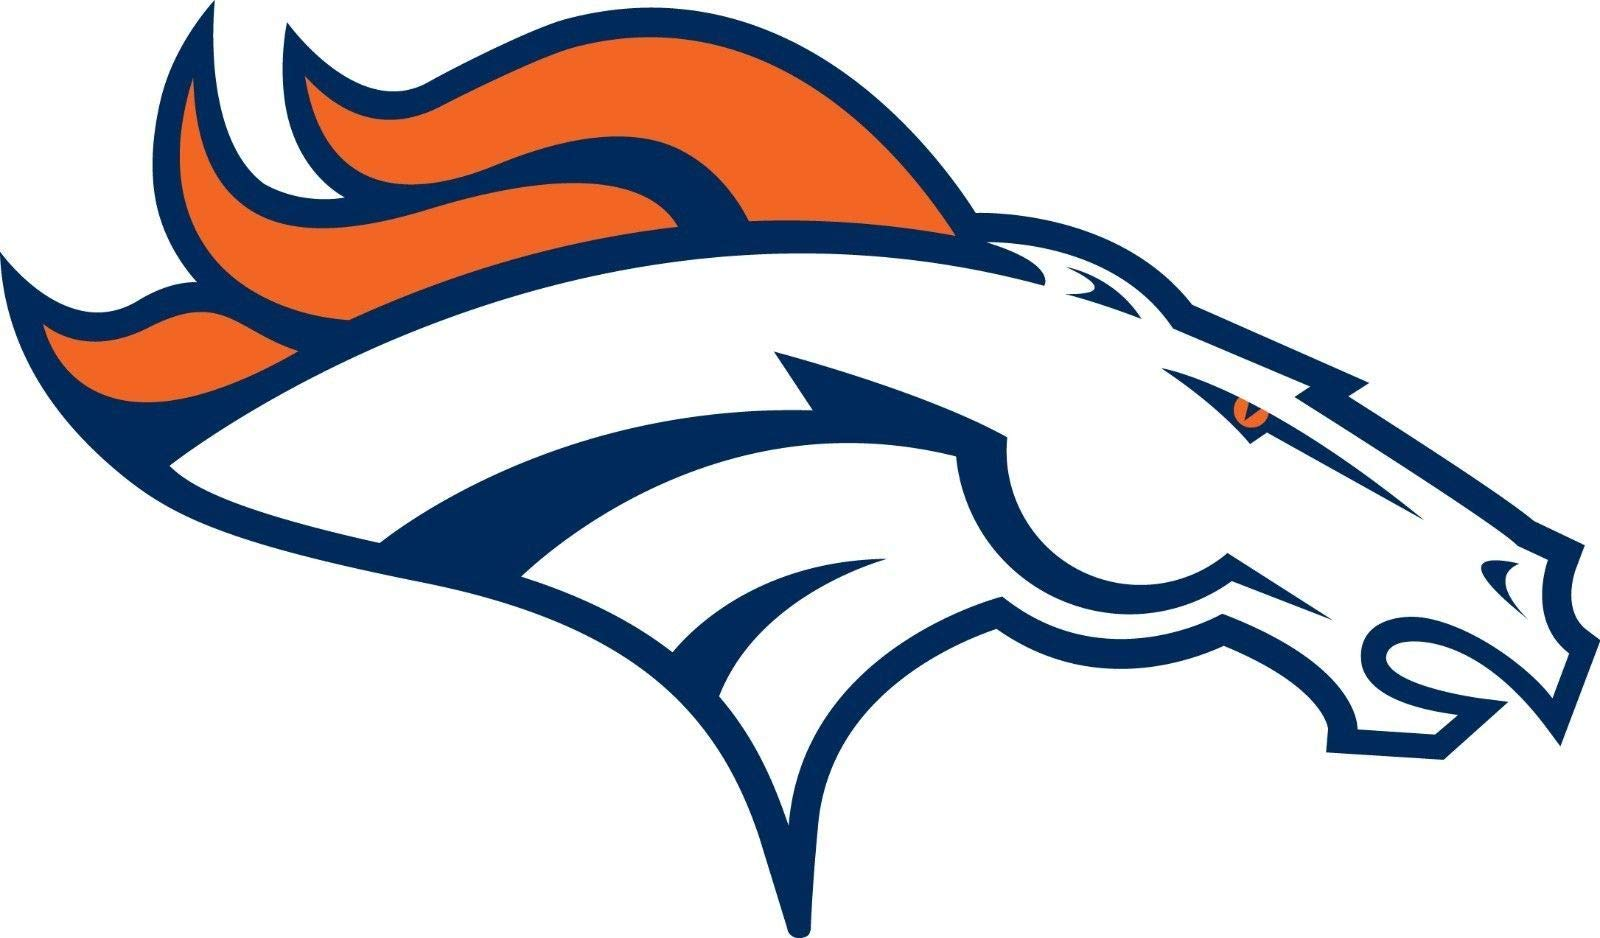 Vinyl Sticker Decal Denver Broncos NFL Car Truck Window Bumper Laptop Wall, 11'' Wide